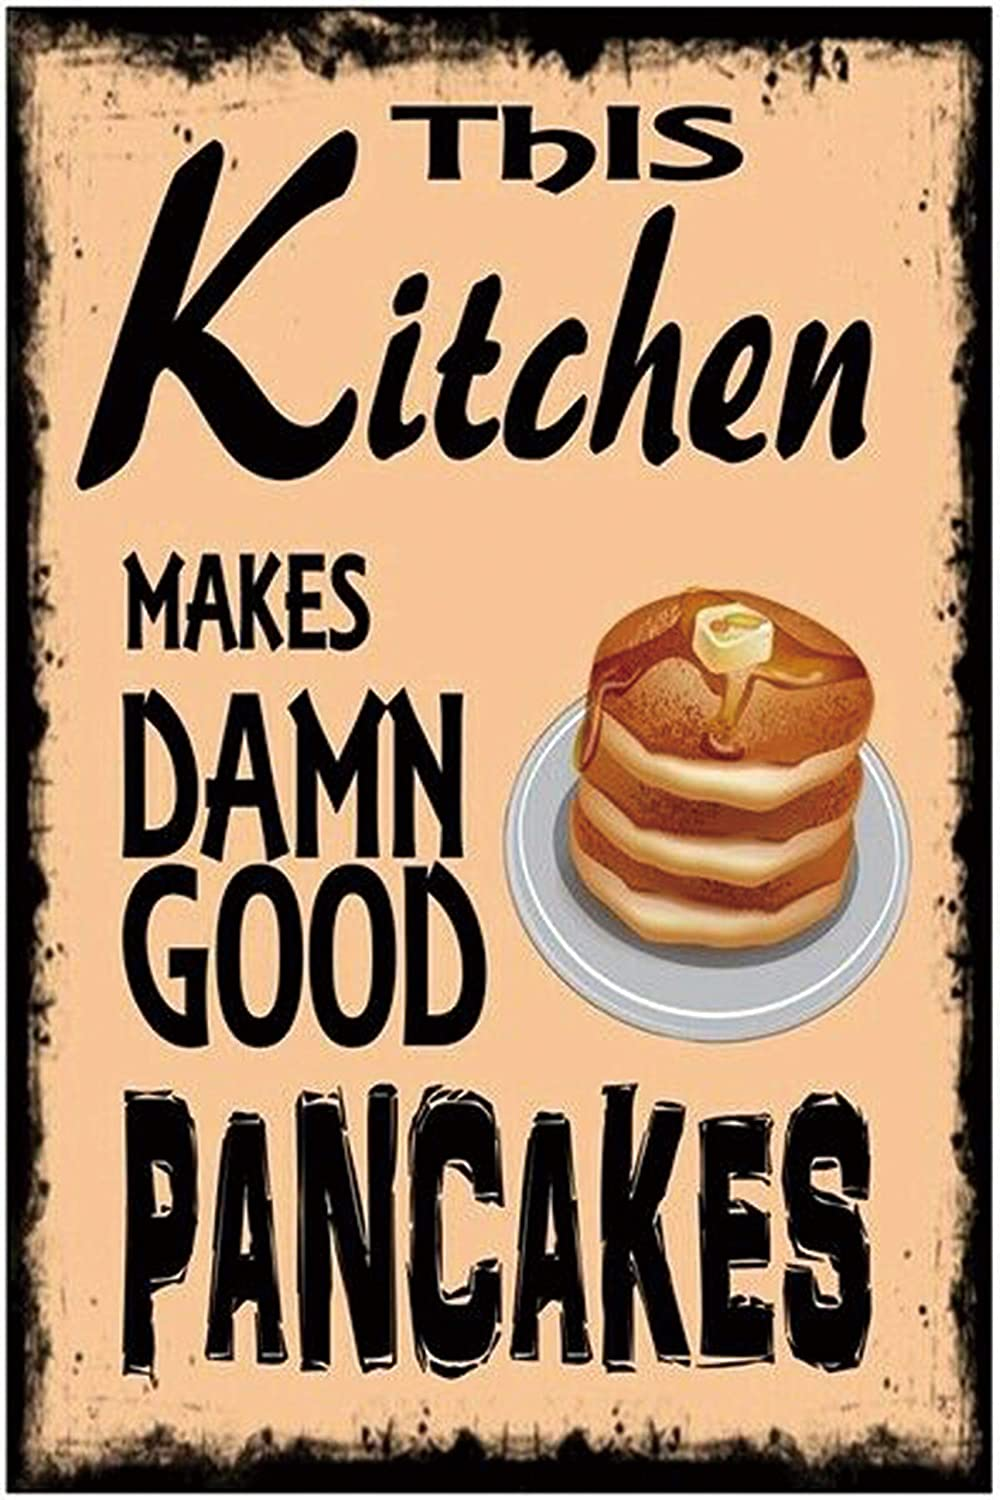 Good Pancakes Vintage Wall Decor w/ Funny Quote, Unique Metal Wall Decor for Home, Bar, Diner, or Pub 12